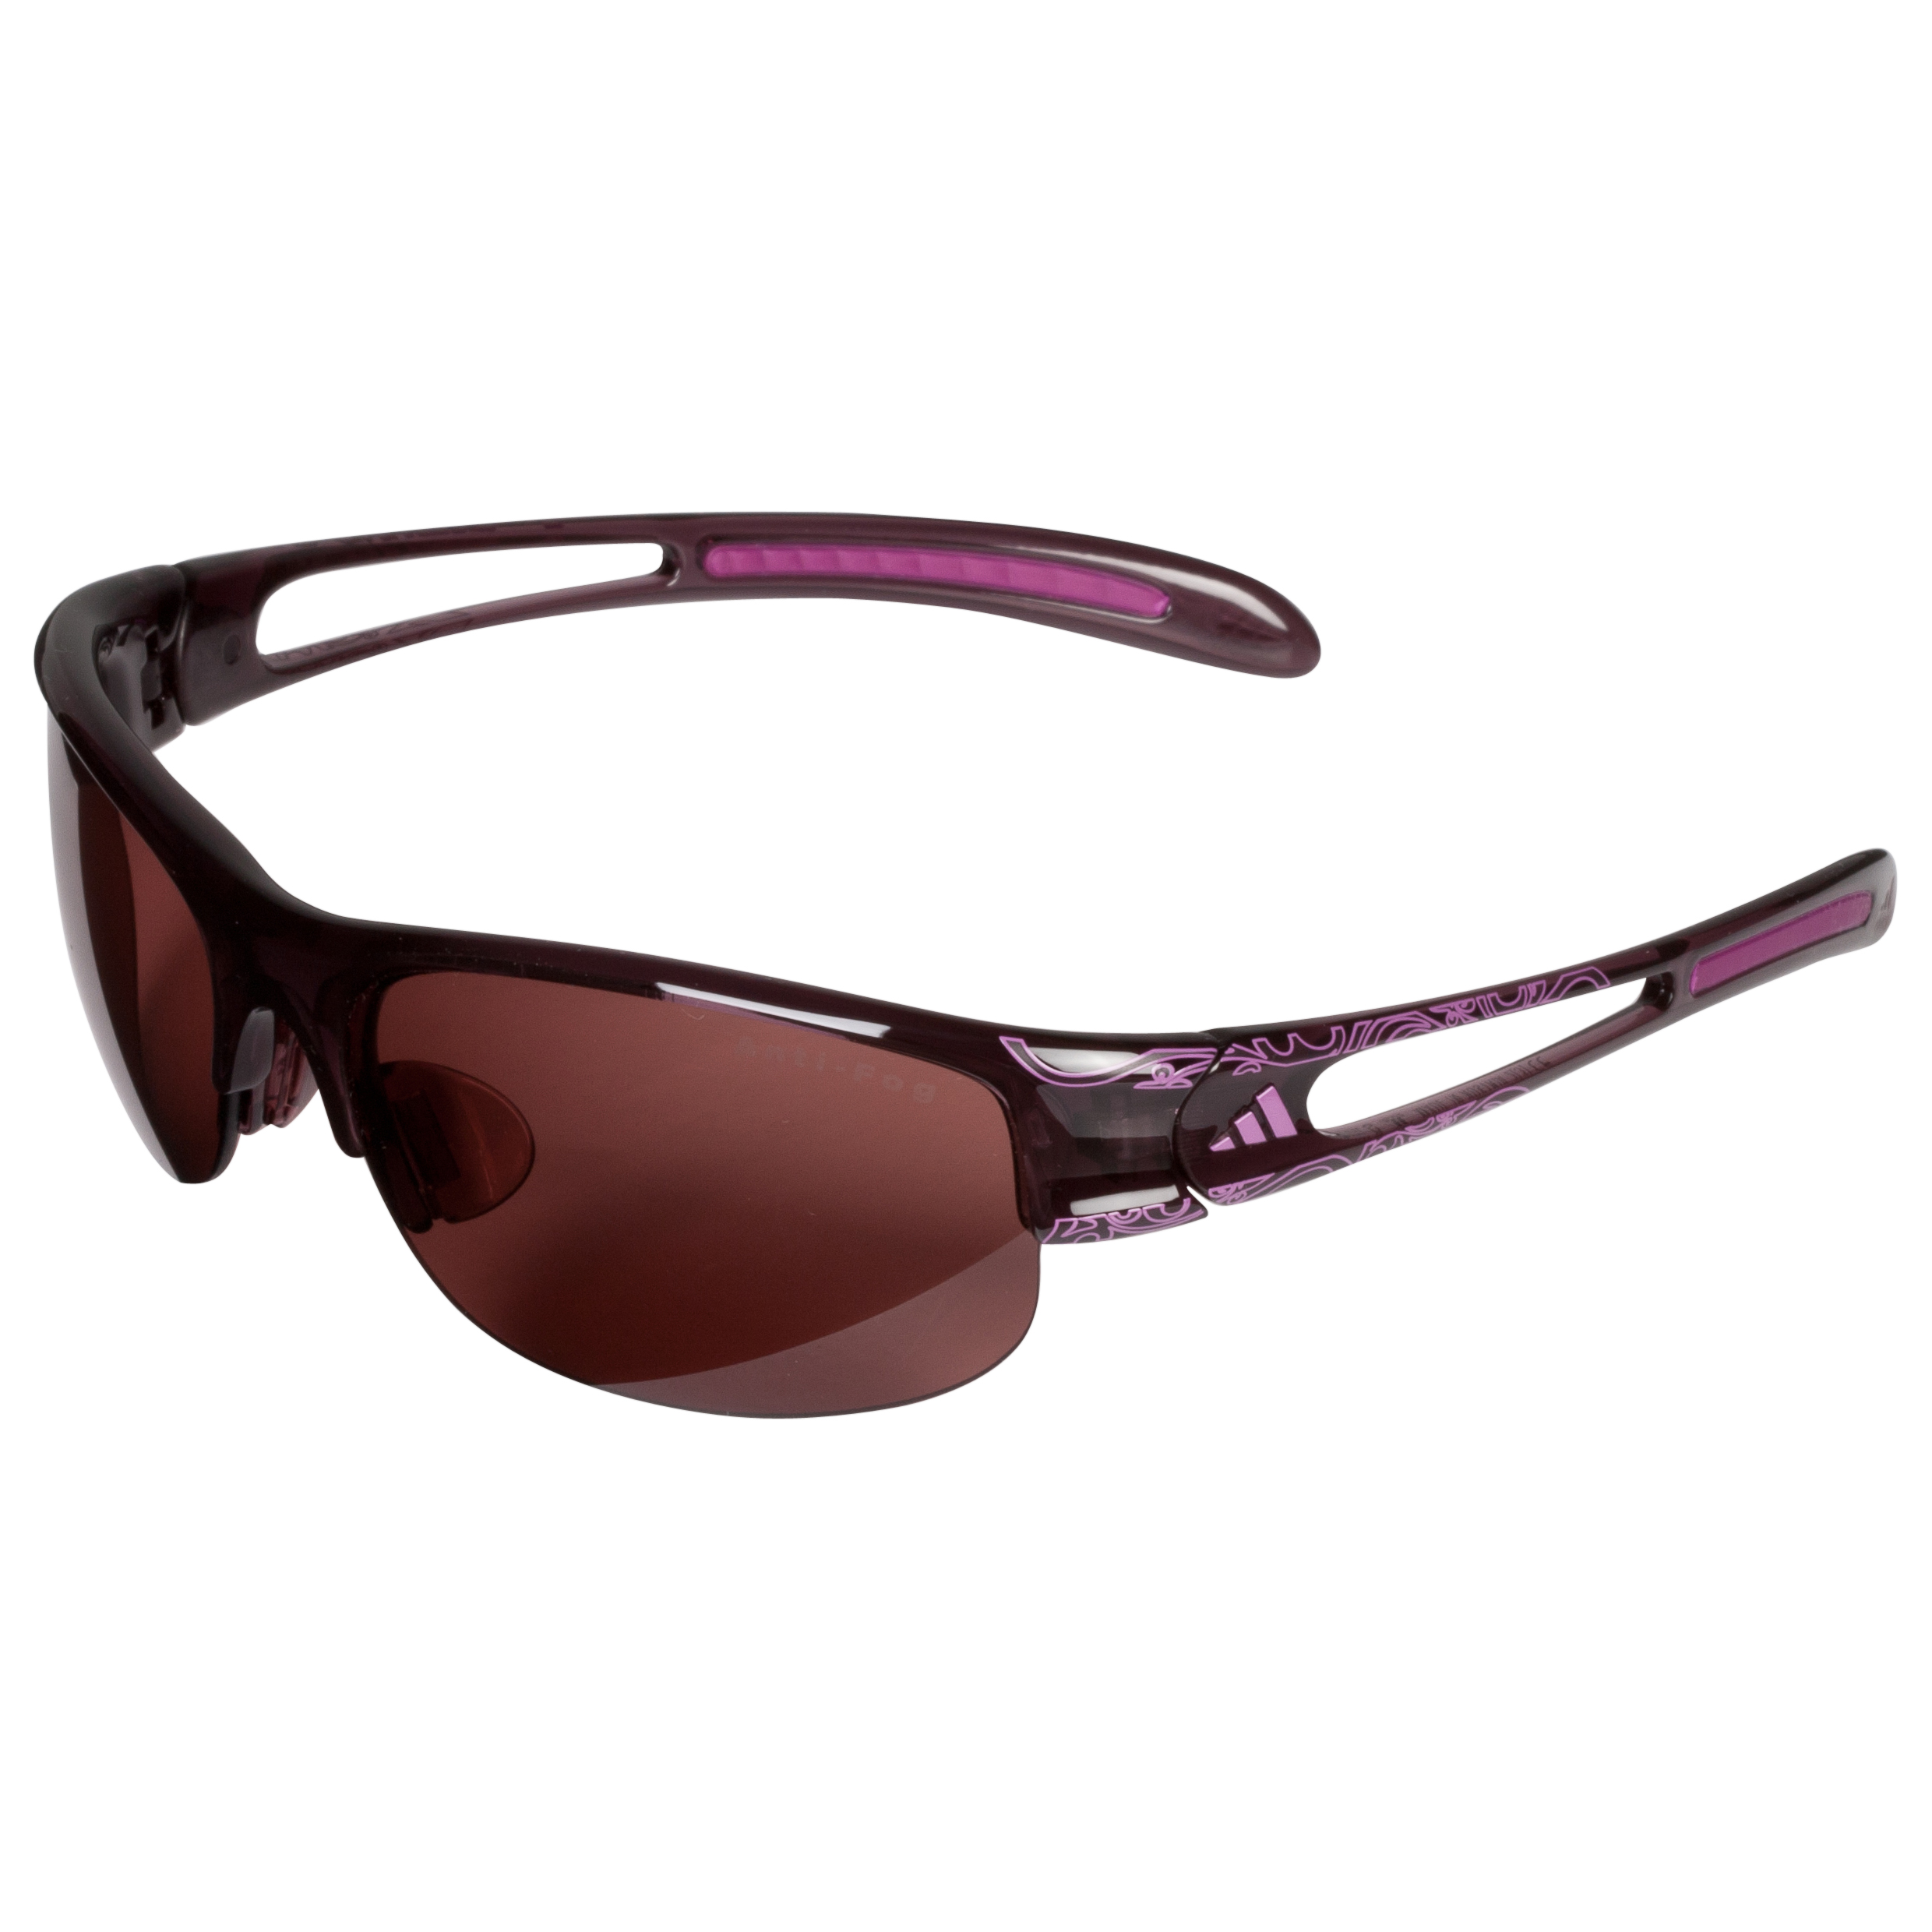 Adidas Adilibria Halfrim Sunglasses - Pink